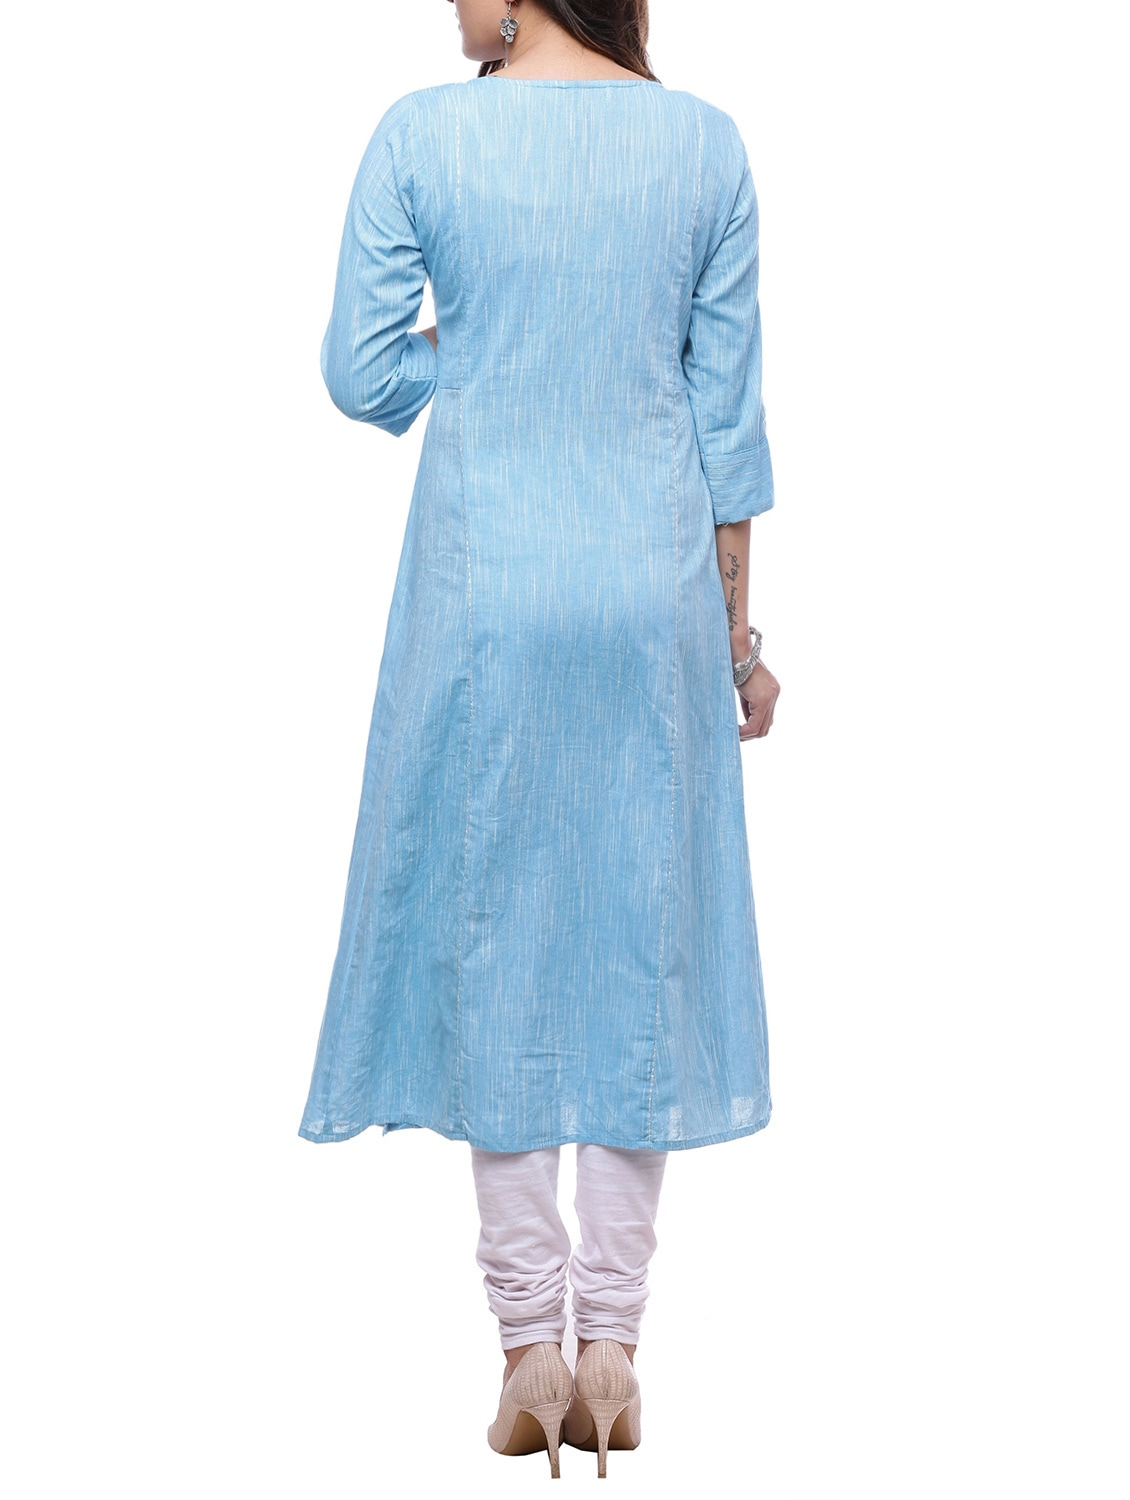 1db68bcfaa4c Buy A-line Melange Kurta for Women from Ayan for ₹860 at 57% off | 2019  Limeroad.com